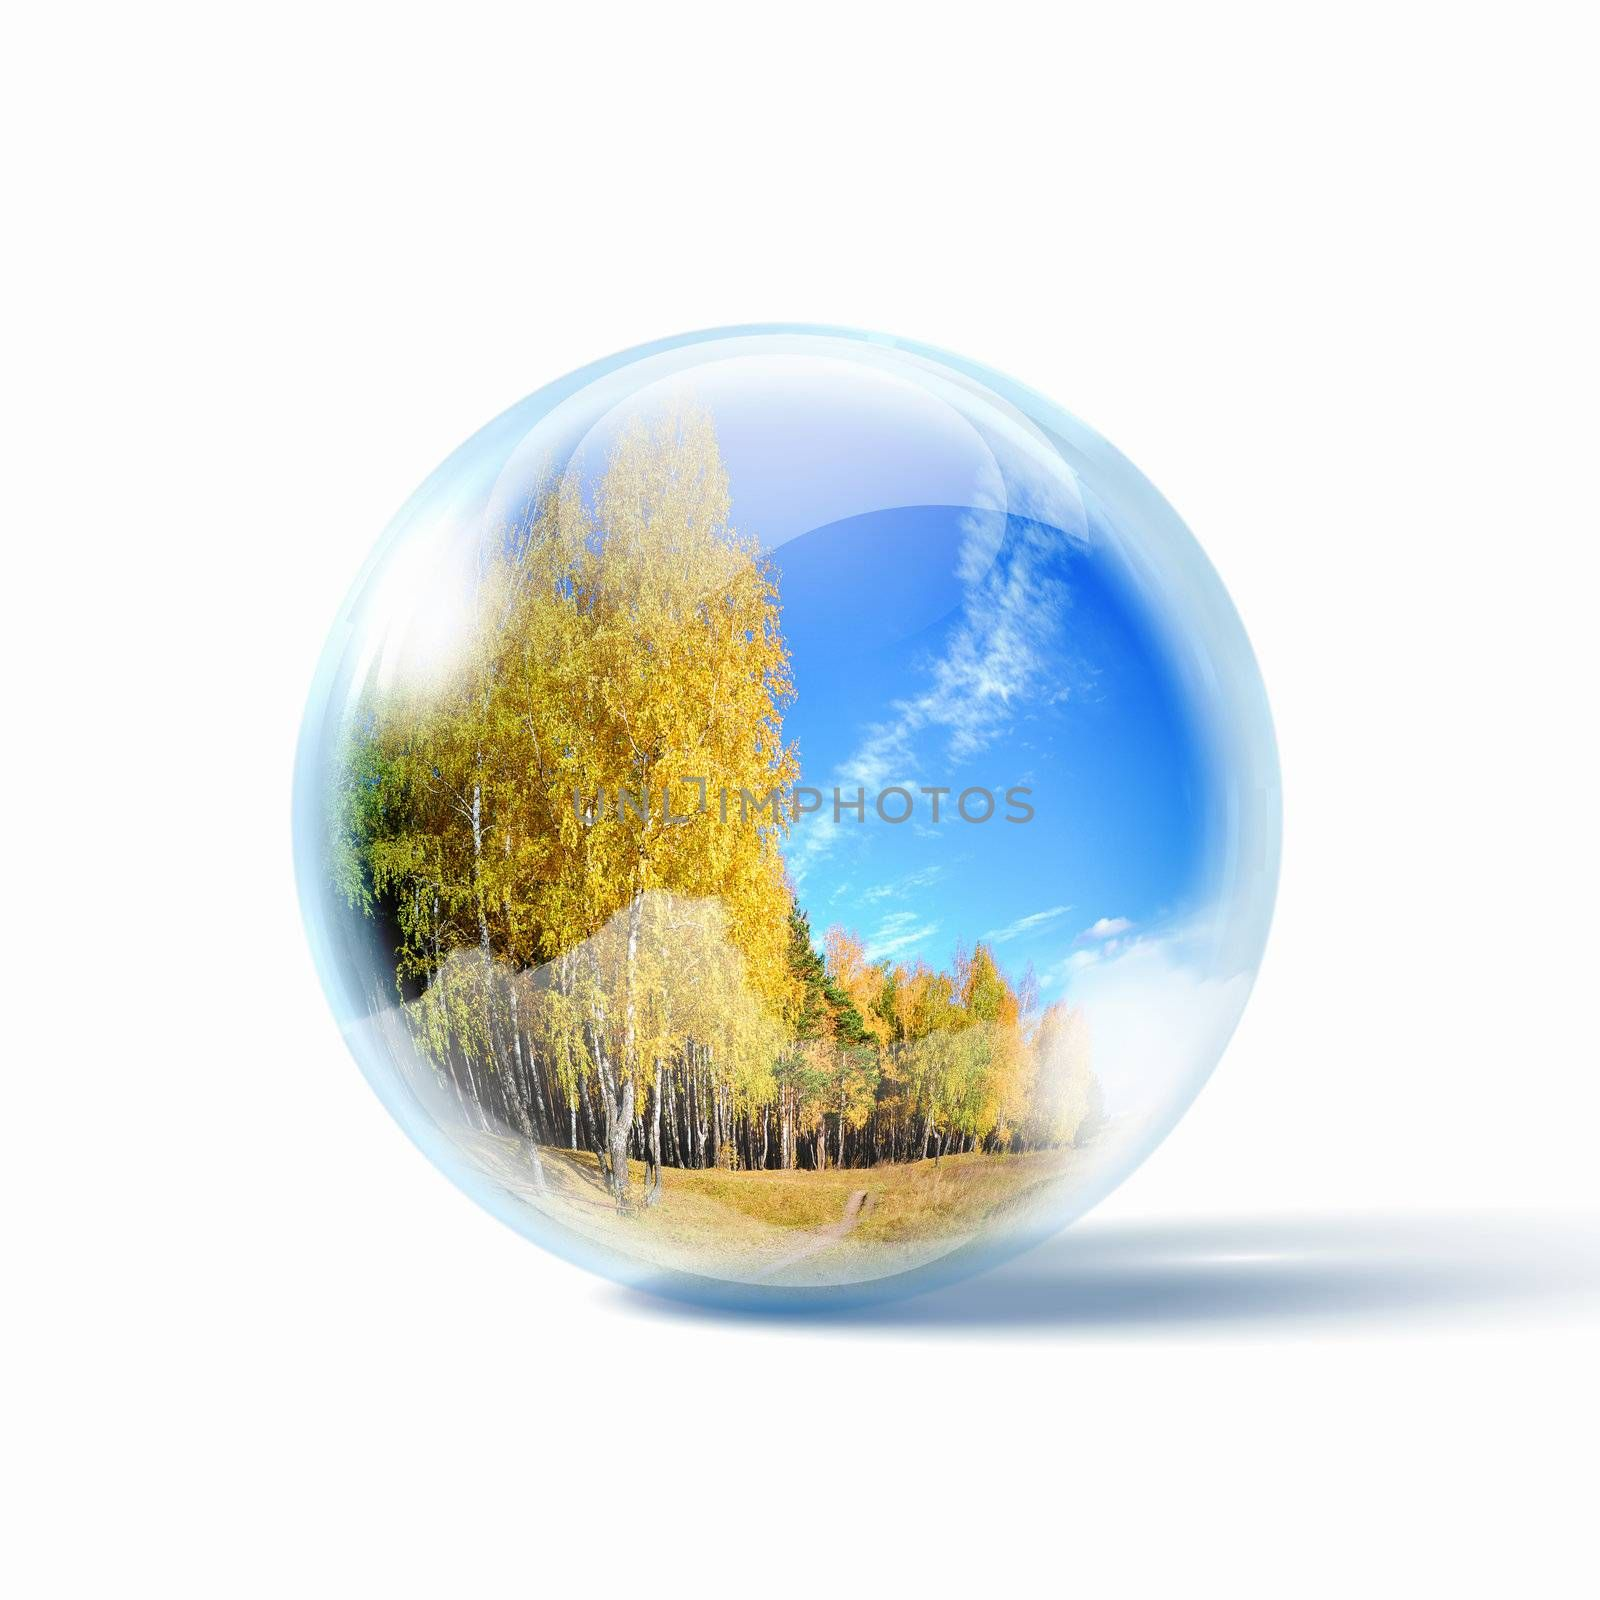 Autumn forest at day time inside a glass sphere